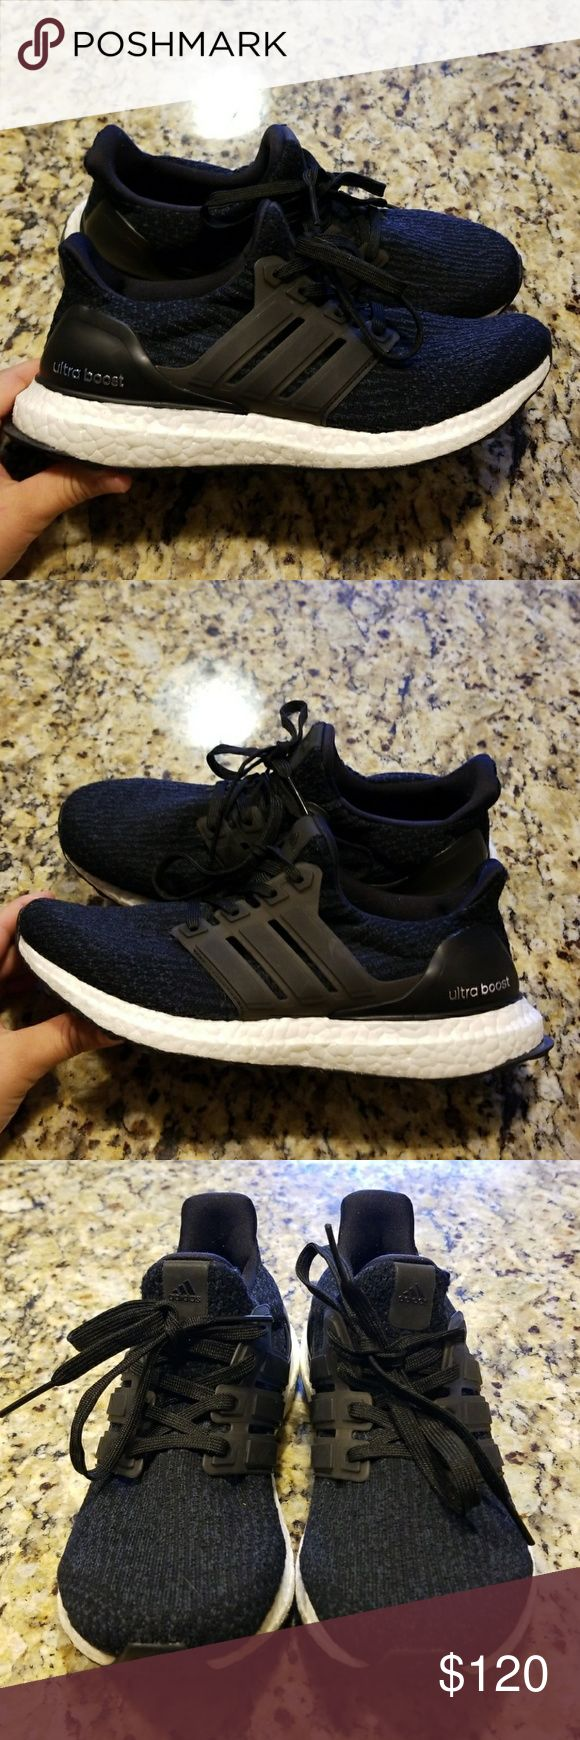 adidas yeezy 750 boost review adidas nmd release nyc